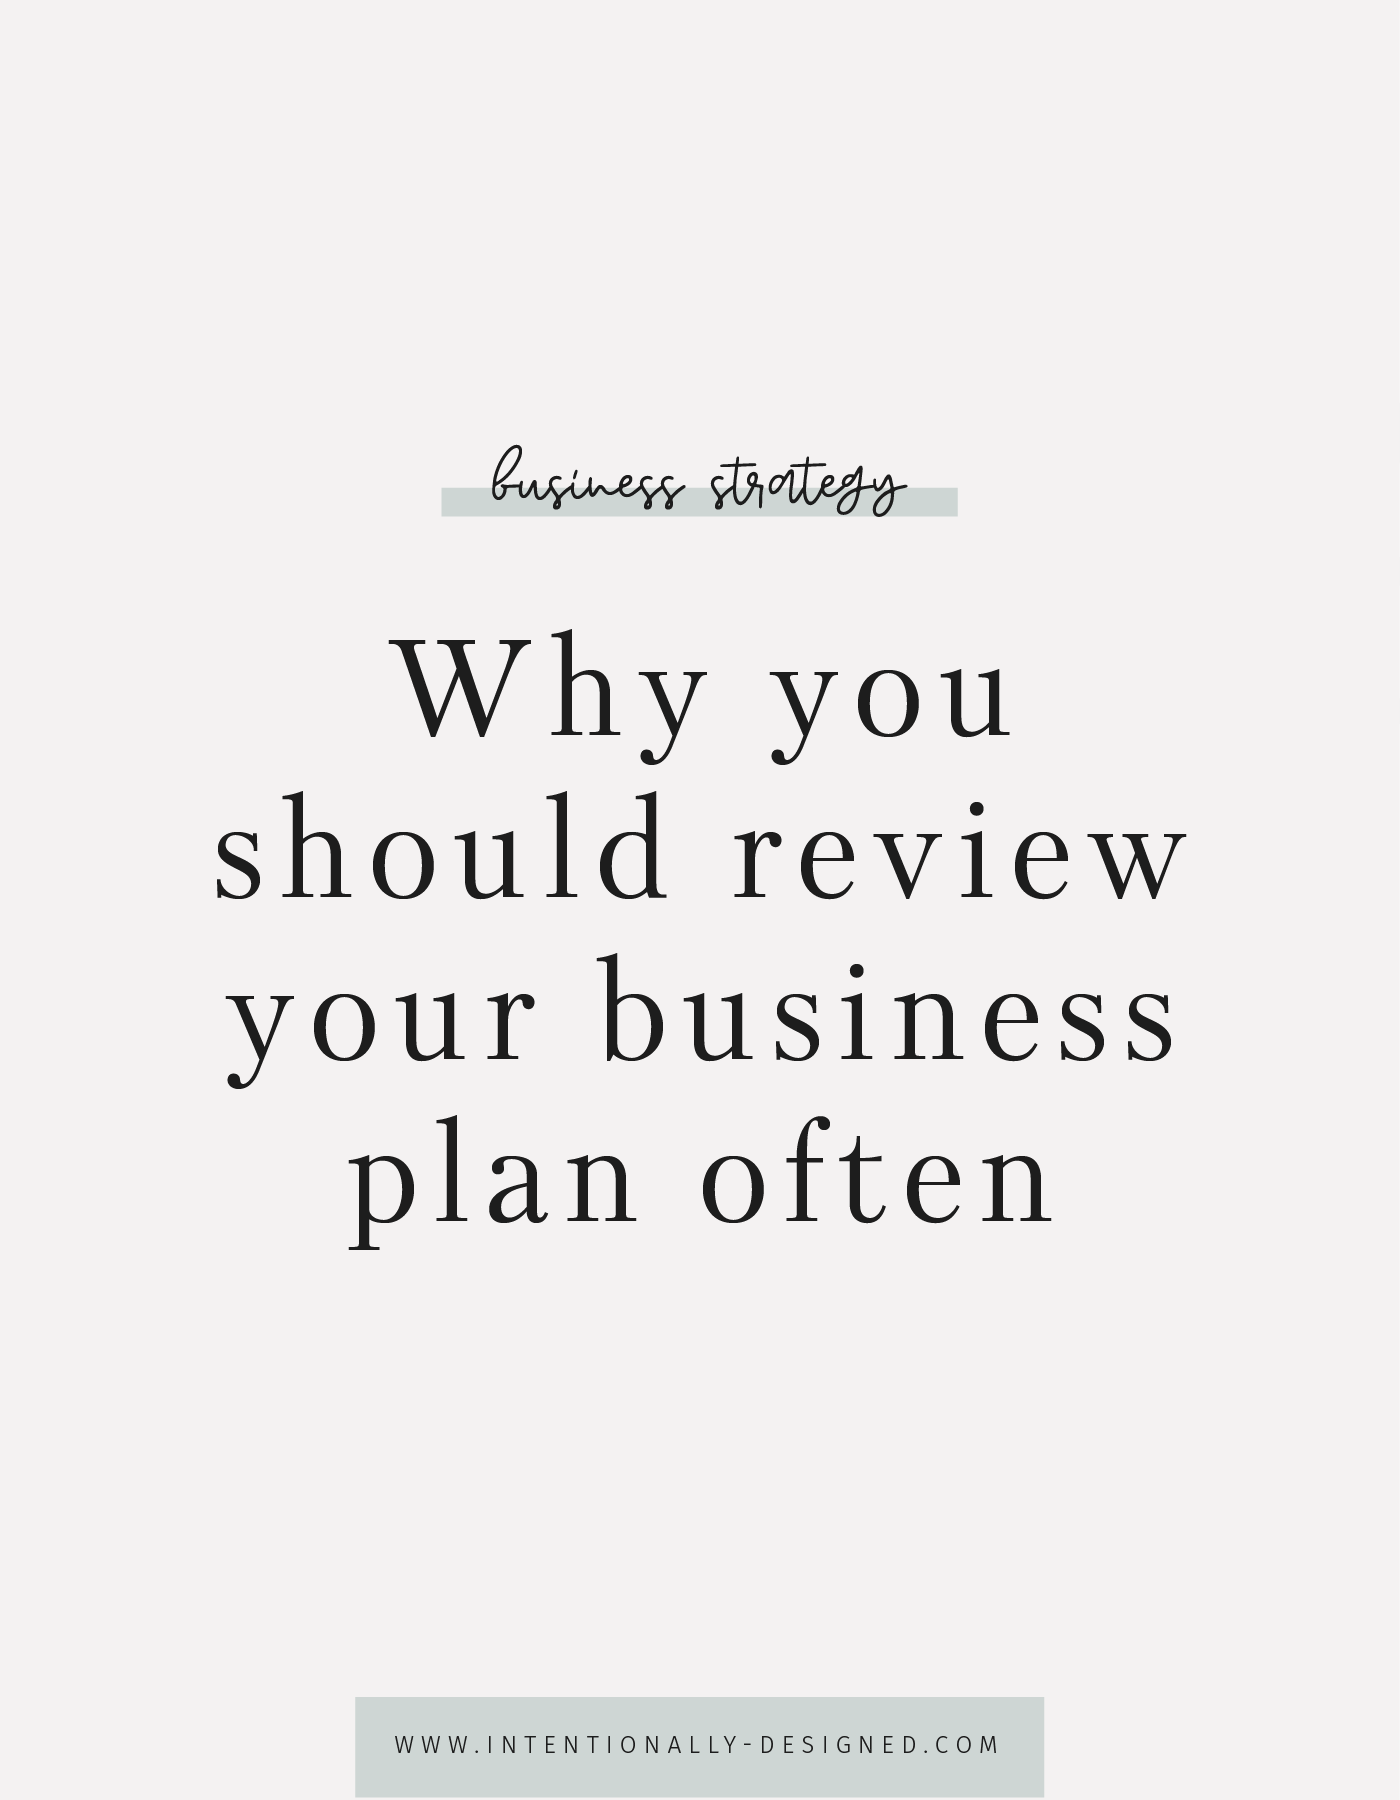 Why you should review your business plan often